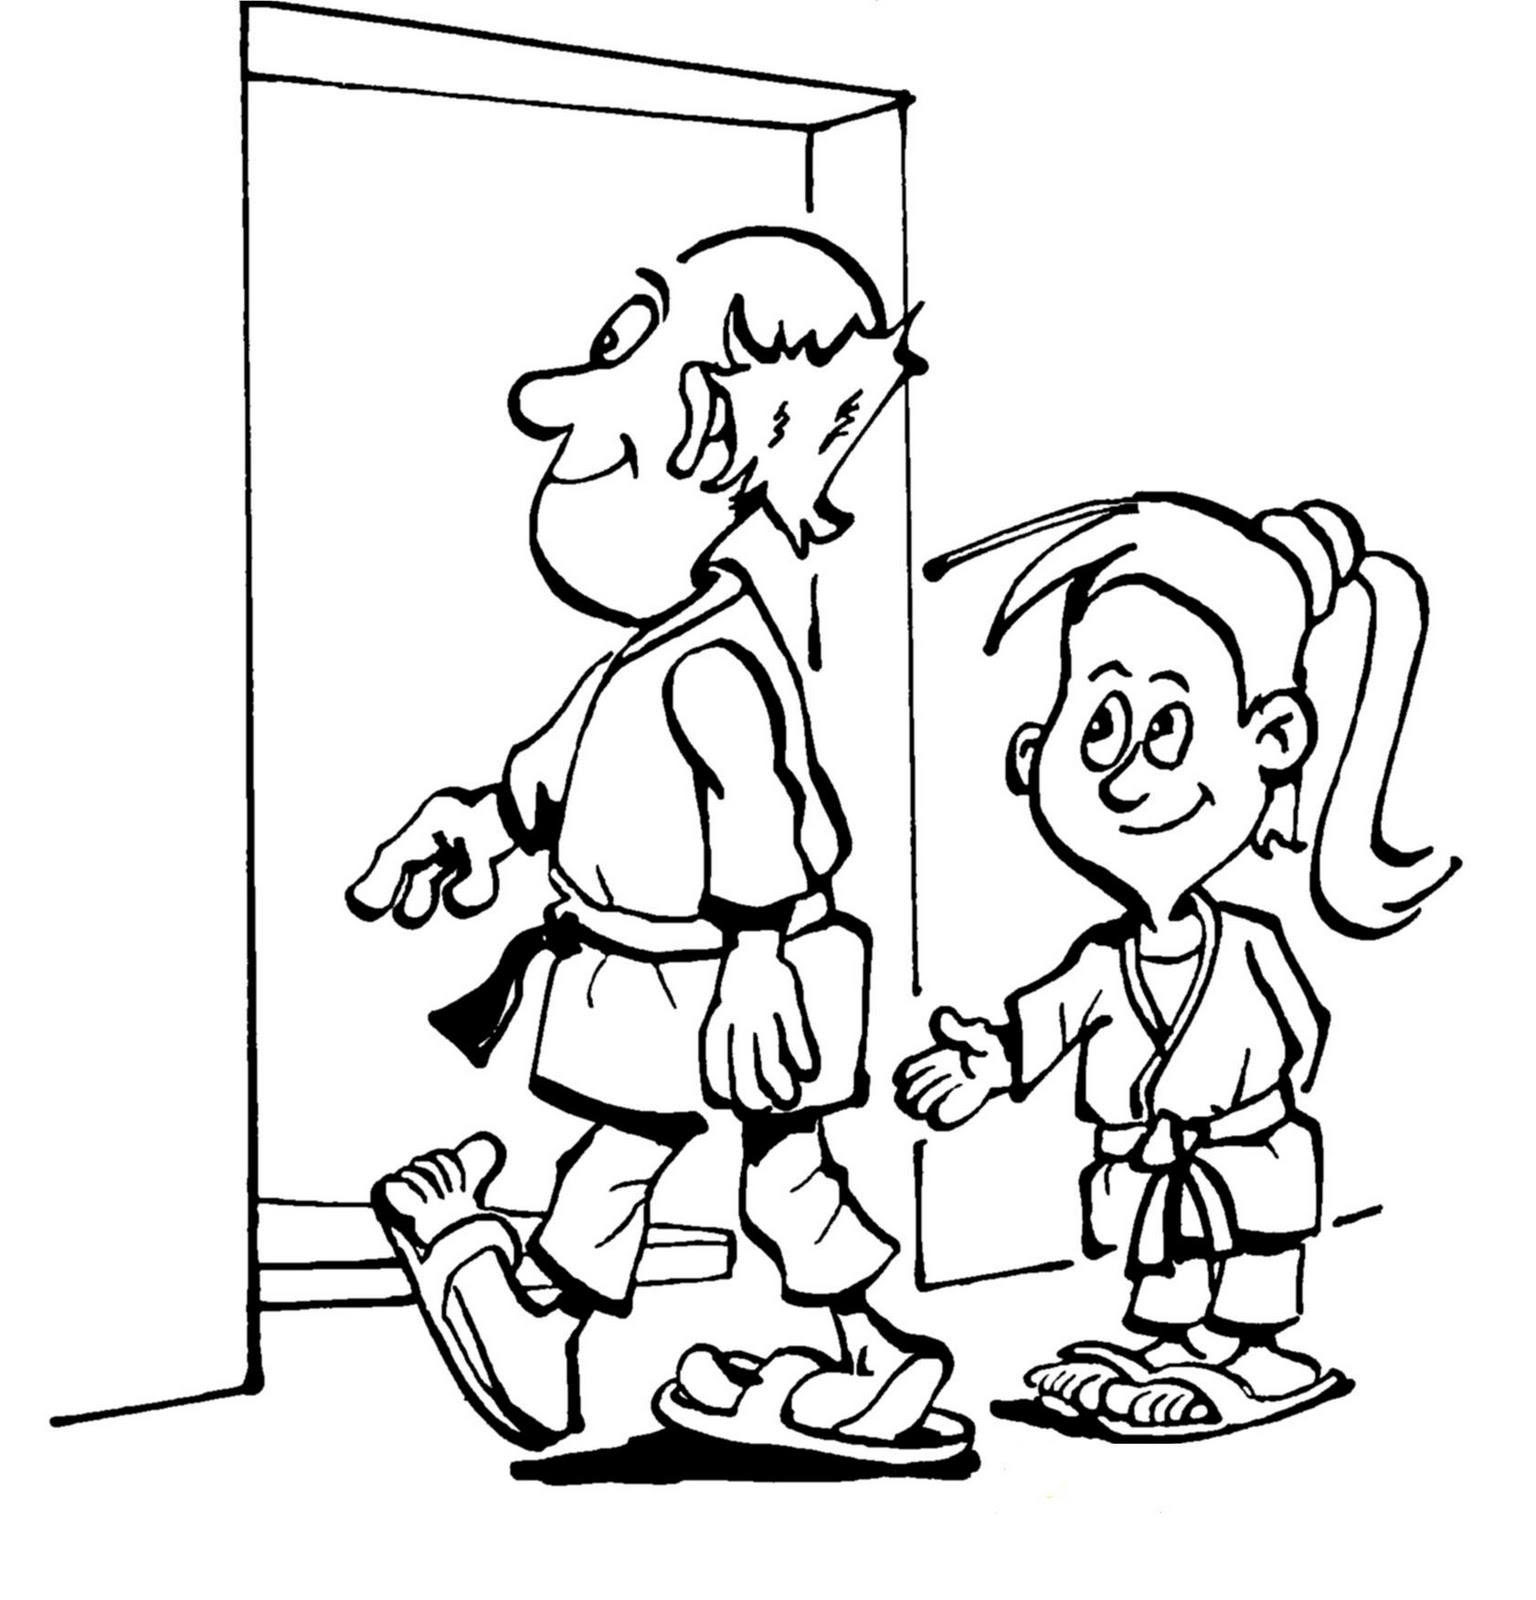 coloring pages showing respect | UNITE TAE KWON DO & FITNESS: Courtesy (Ye Ui)